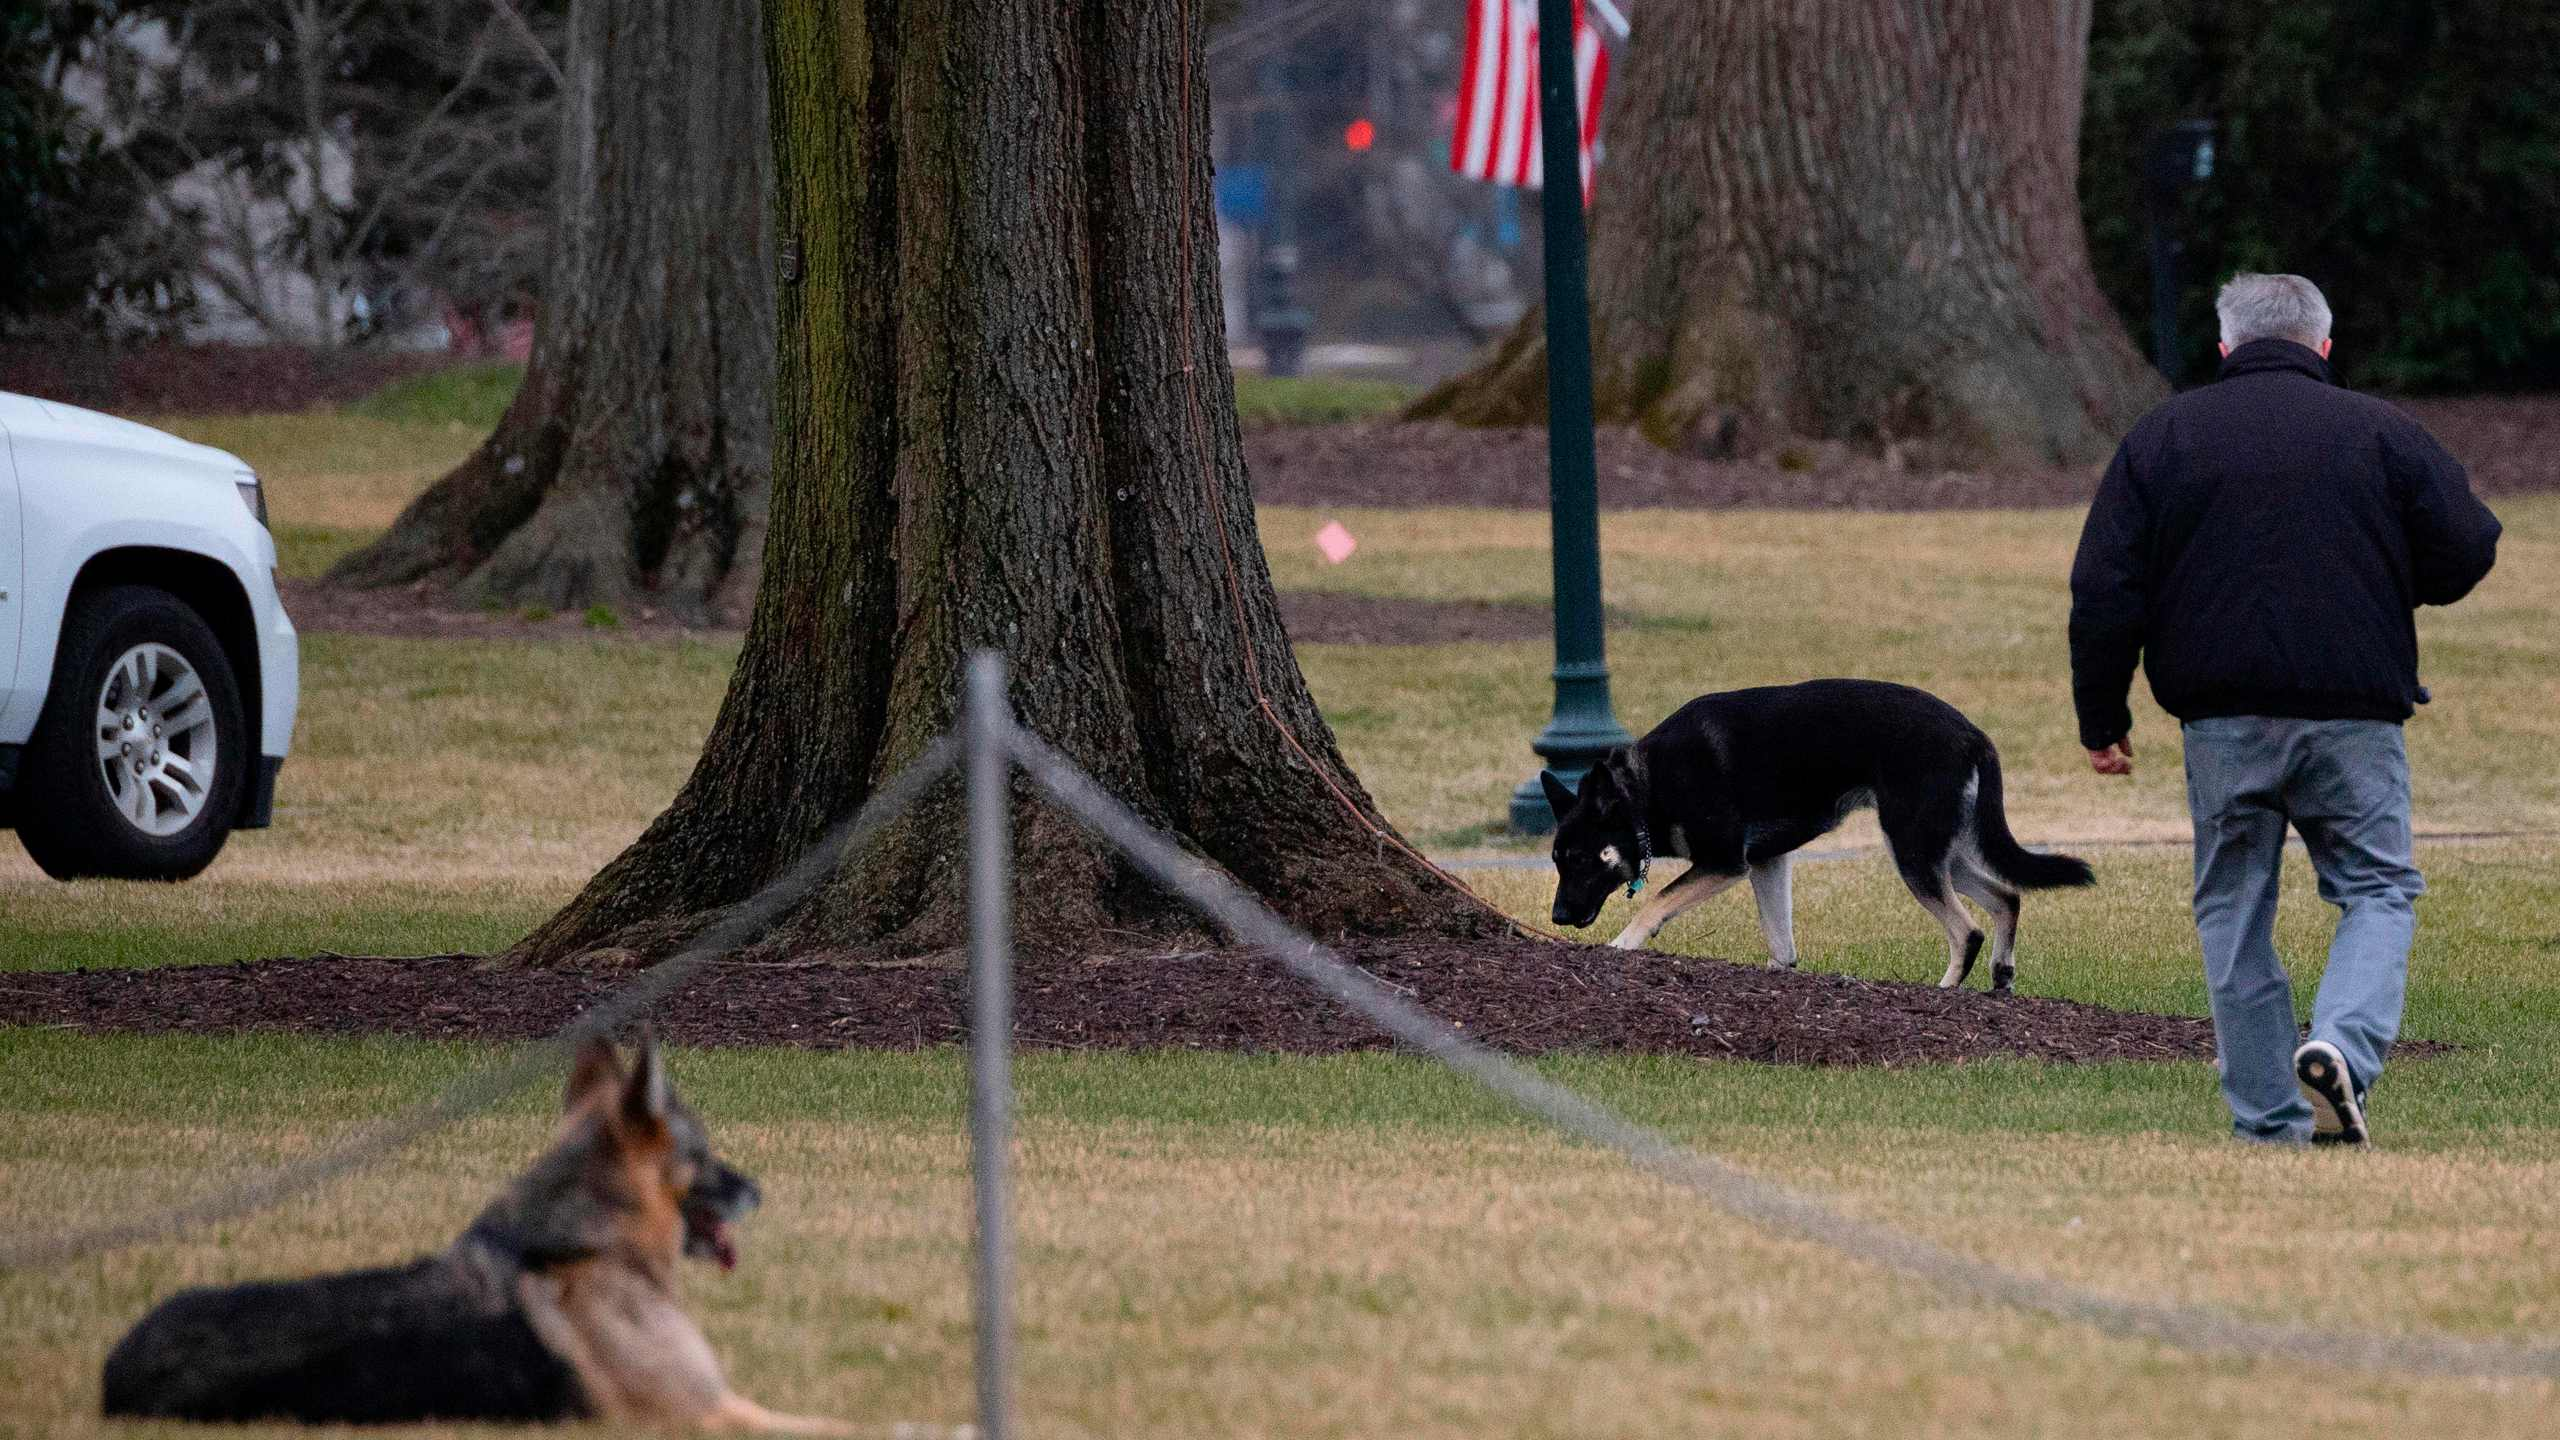 First dogs Champ and Major Biden are seen on the South Lawn of the White House on Jan. 25, 2021. (Jim Watson / AFP / Getty Images)